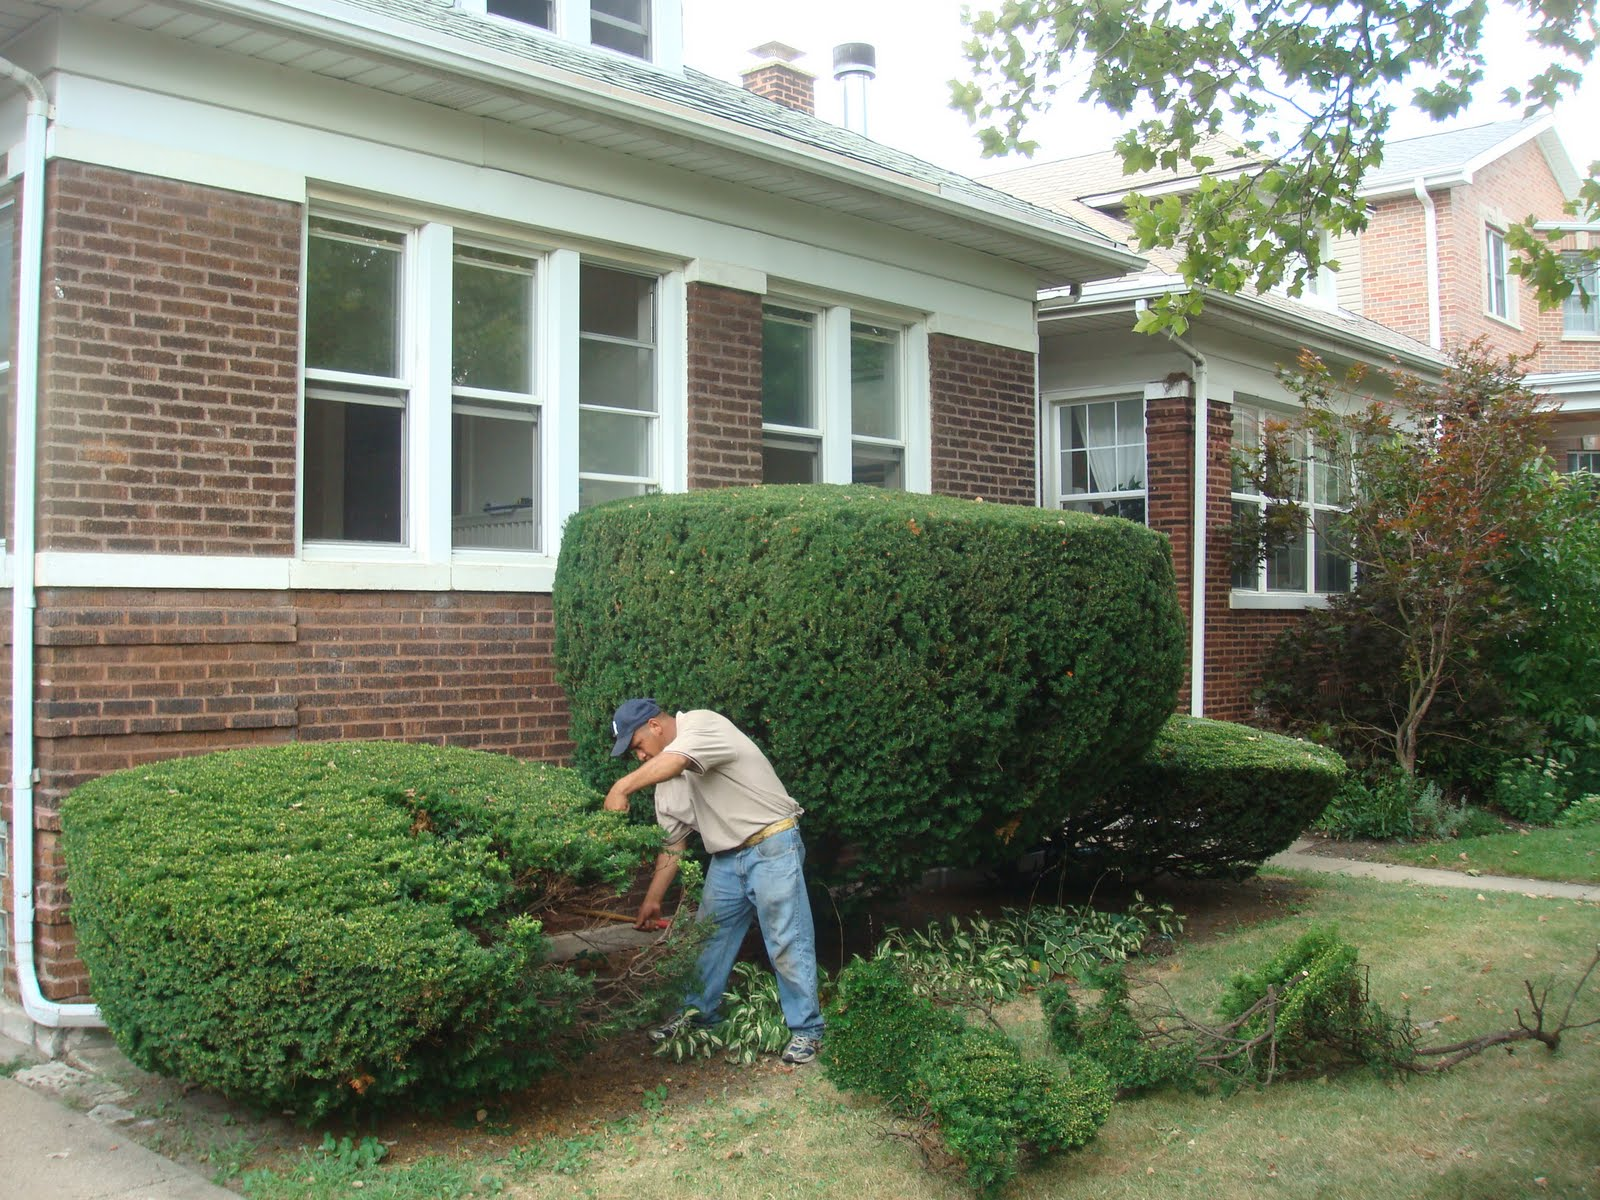 This 90 Year Old Chicago Bungalow Had Huge Evergreen Bushes Covering The Front Of House Brick Needed A Full Grind Tuck Point And Wash